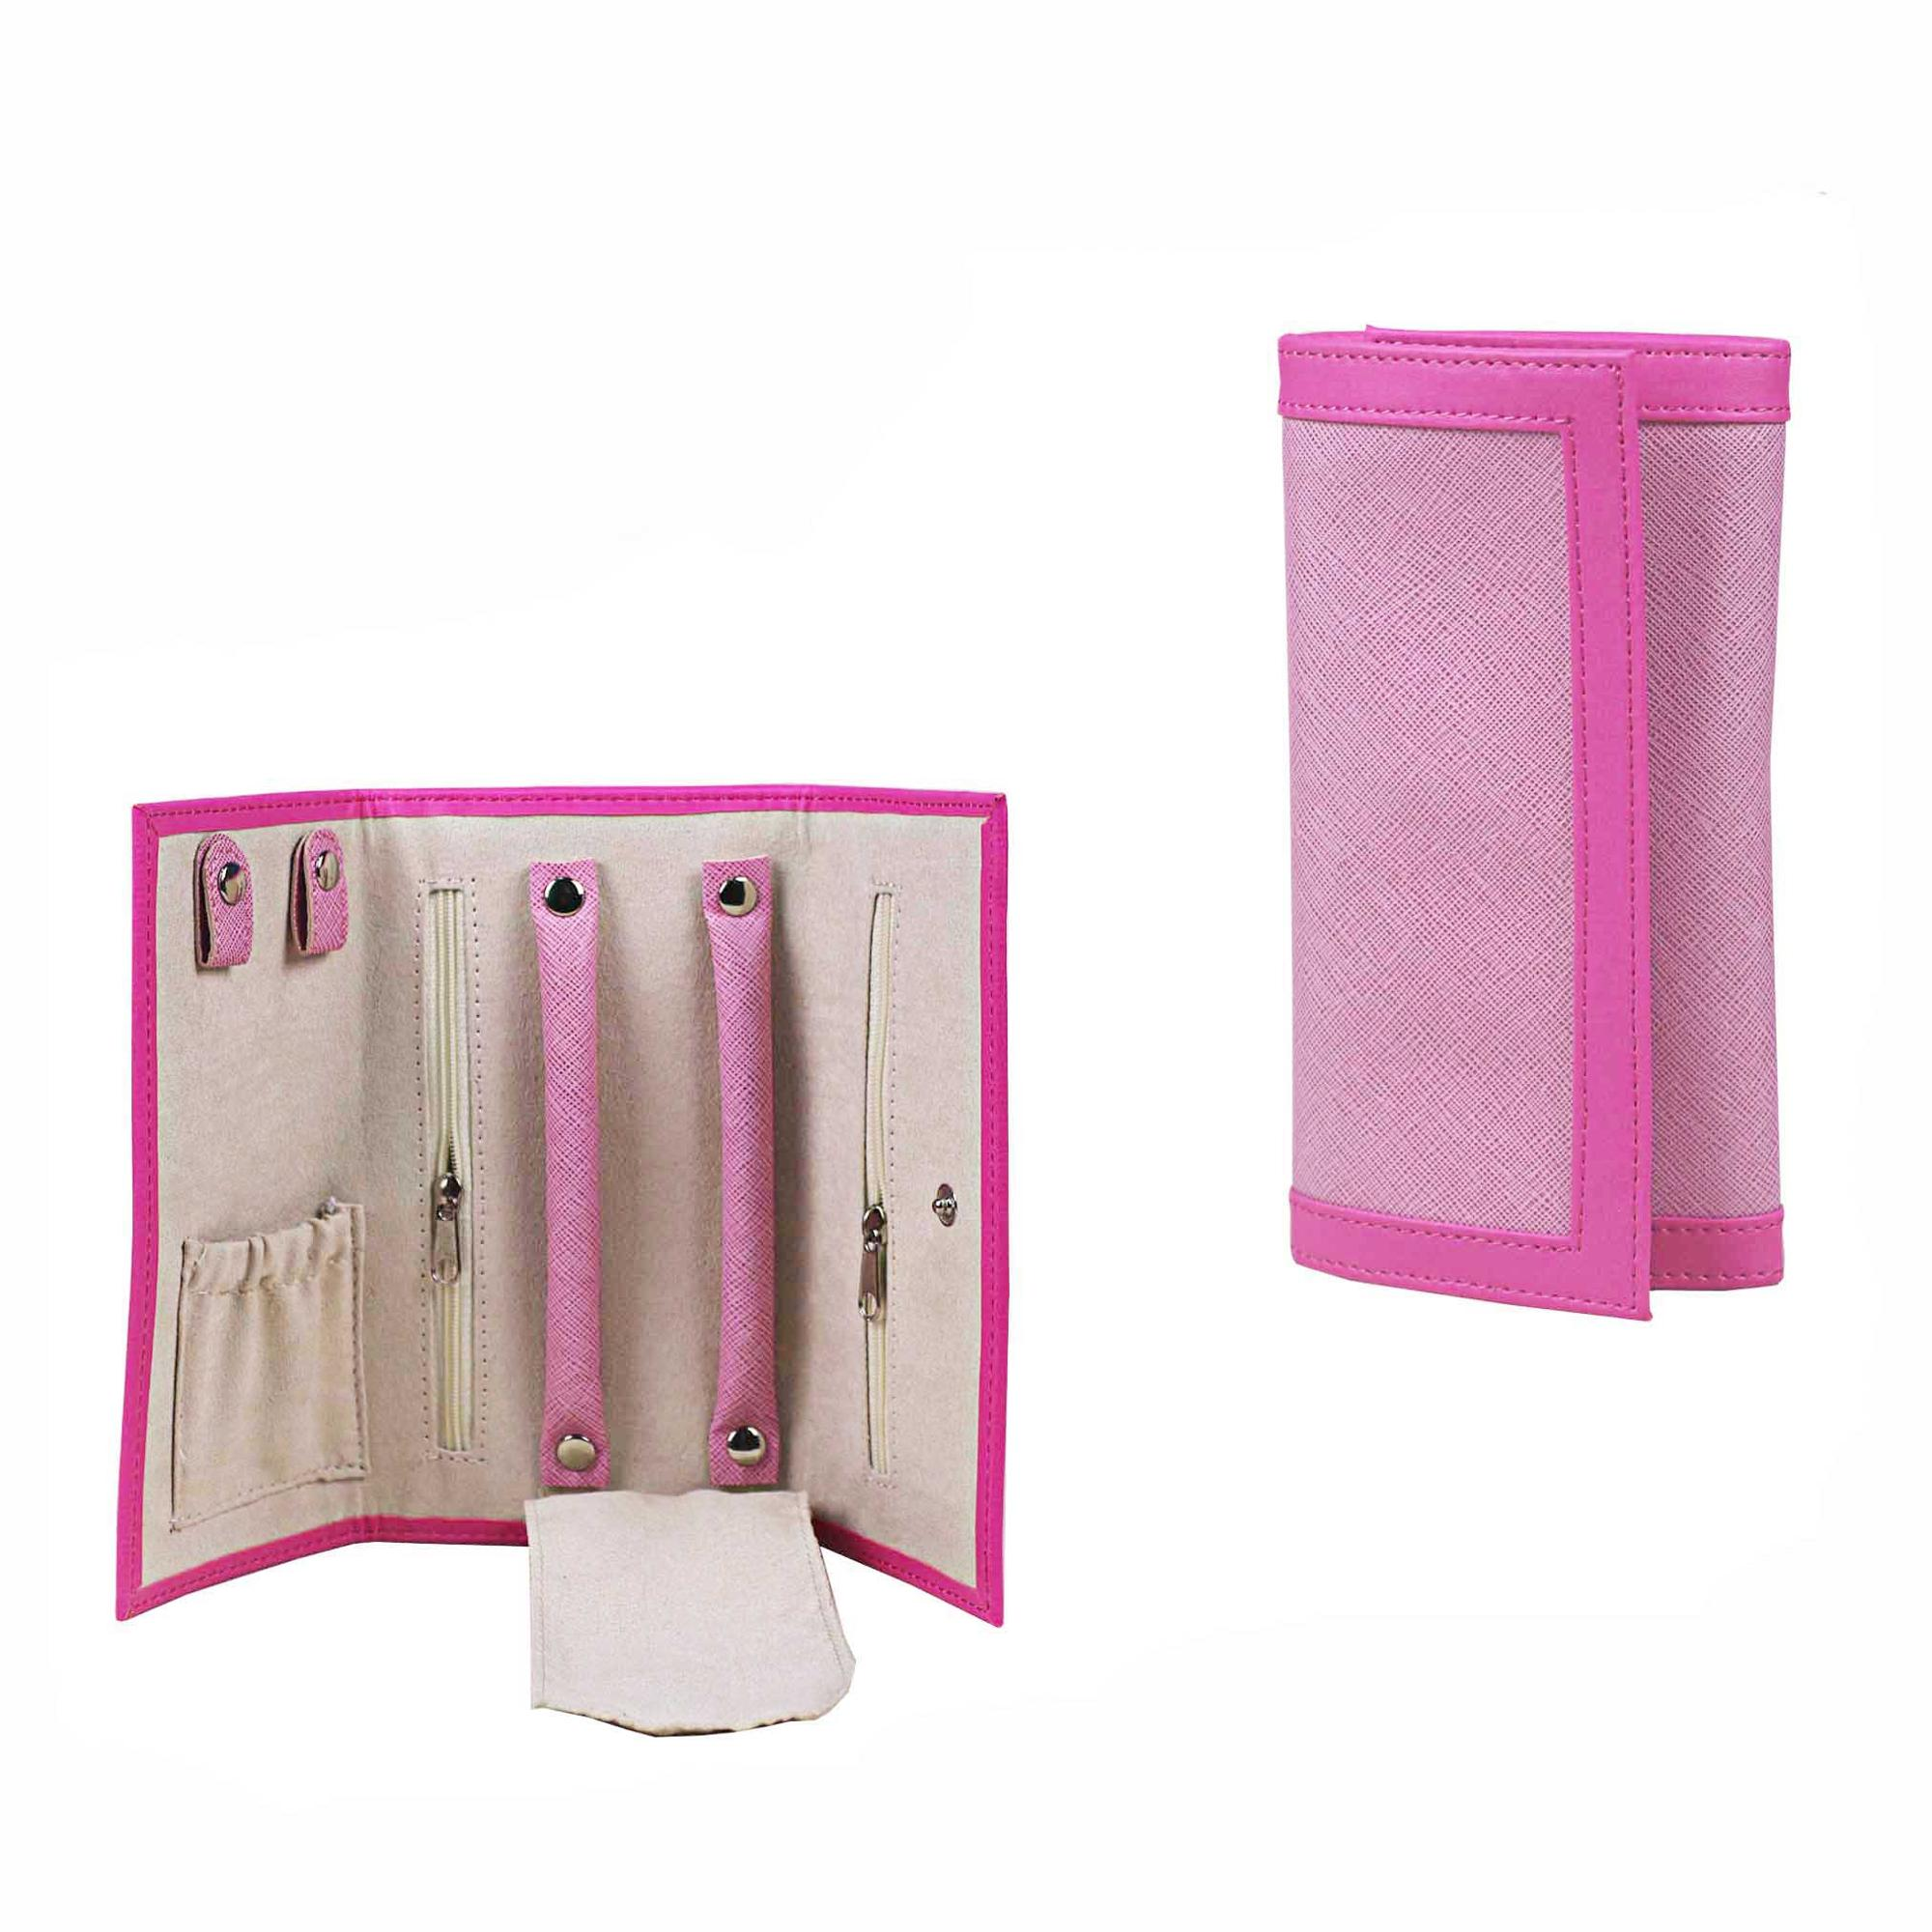 Wholesale handmade pink folding faux leather jewelry organizer roll jewellery travel roll bag